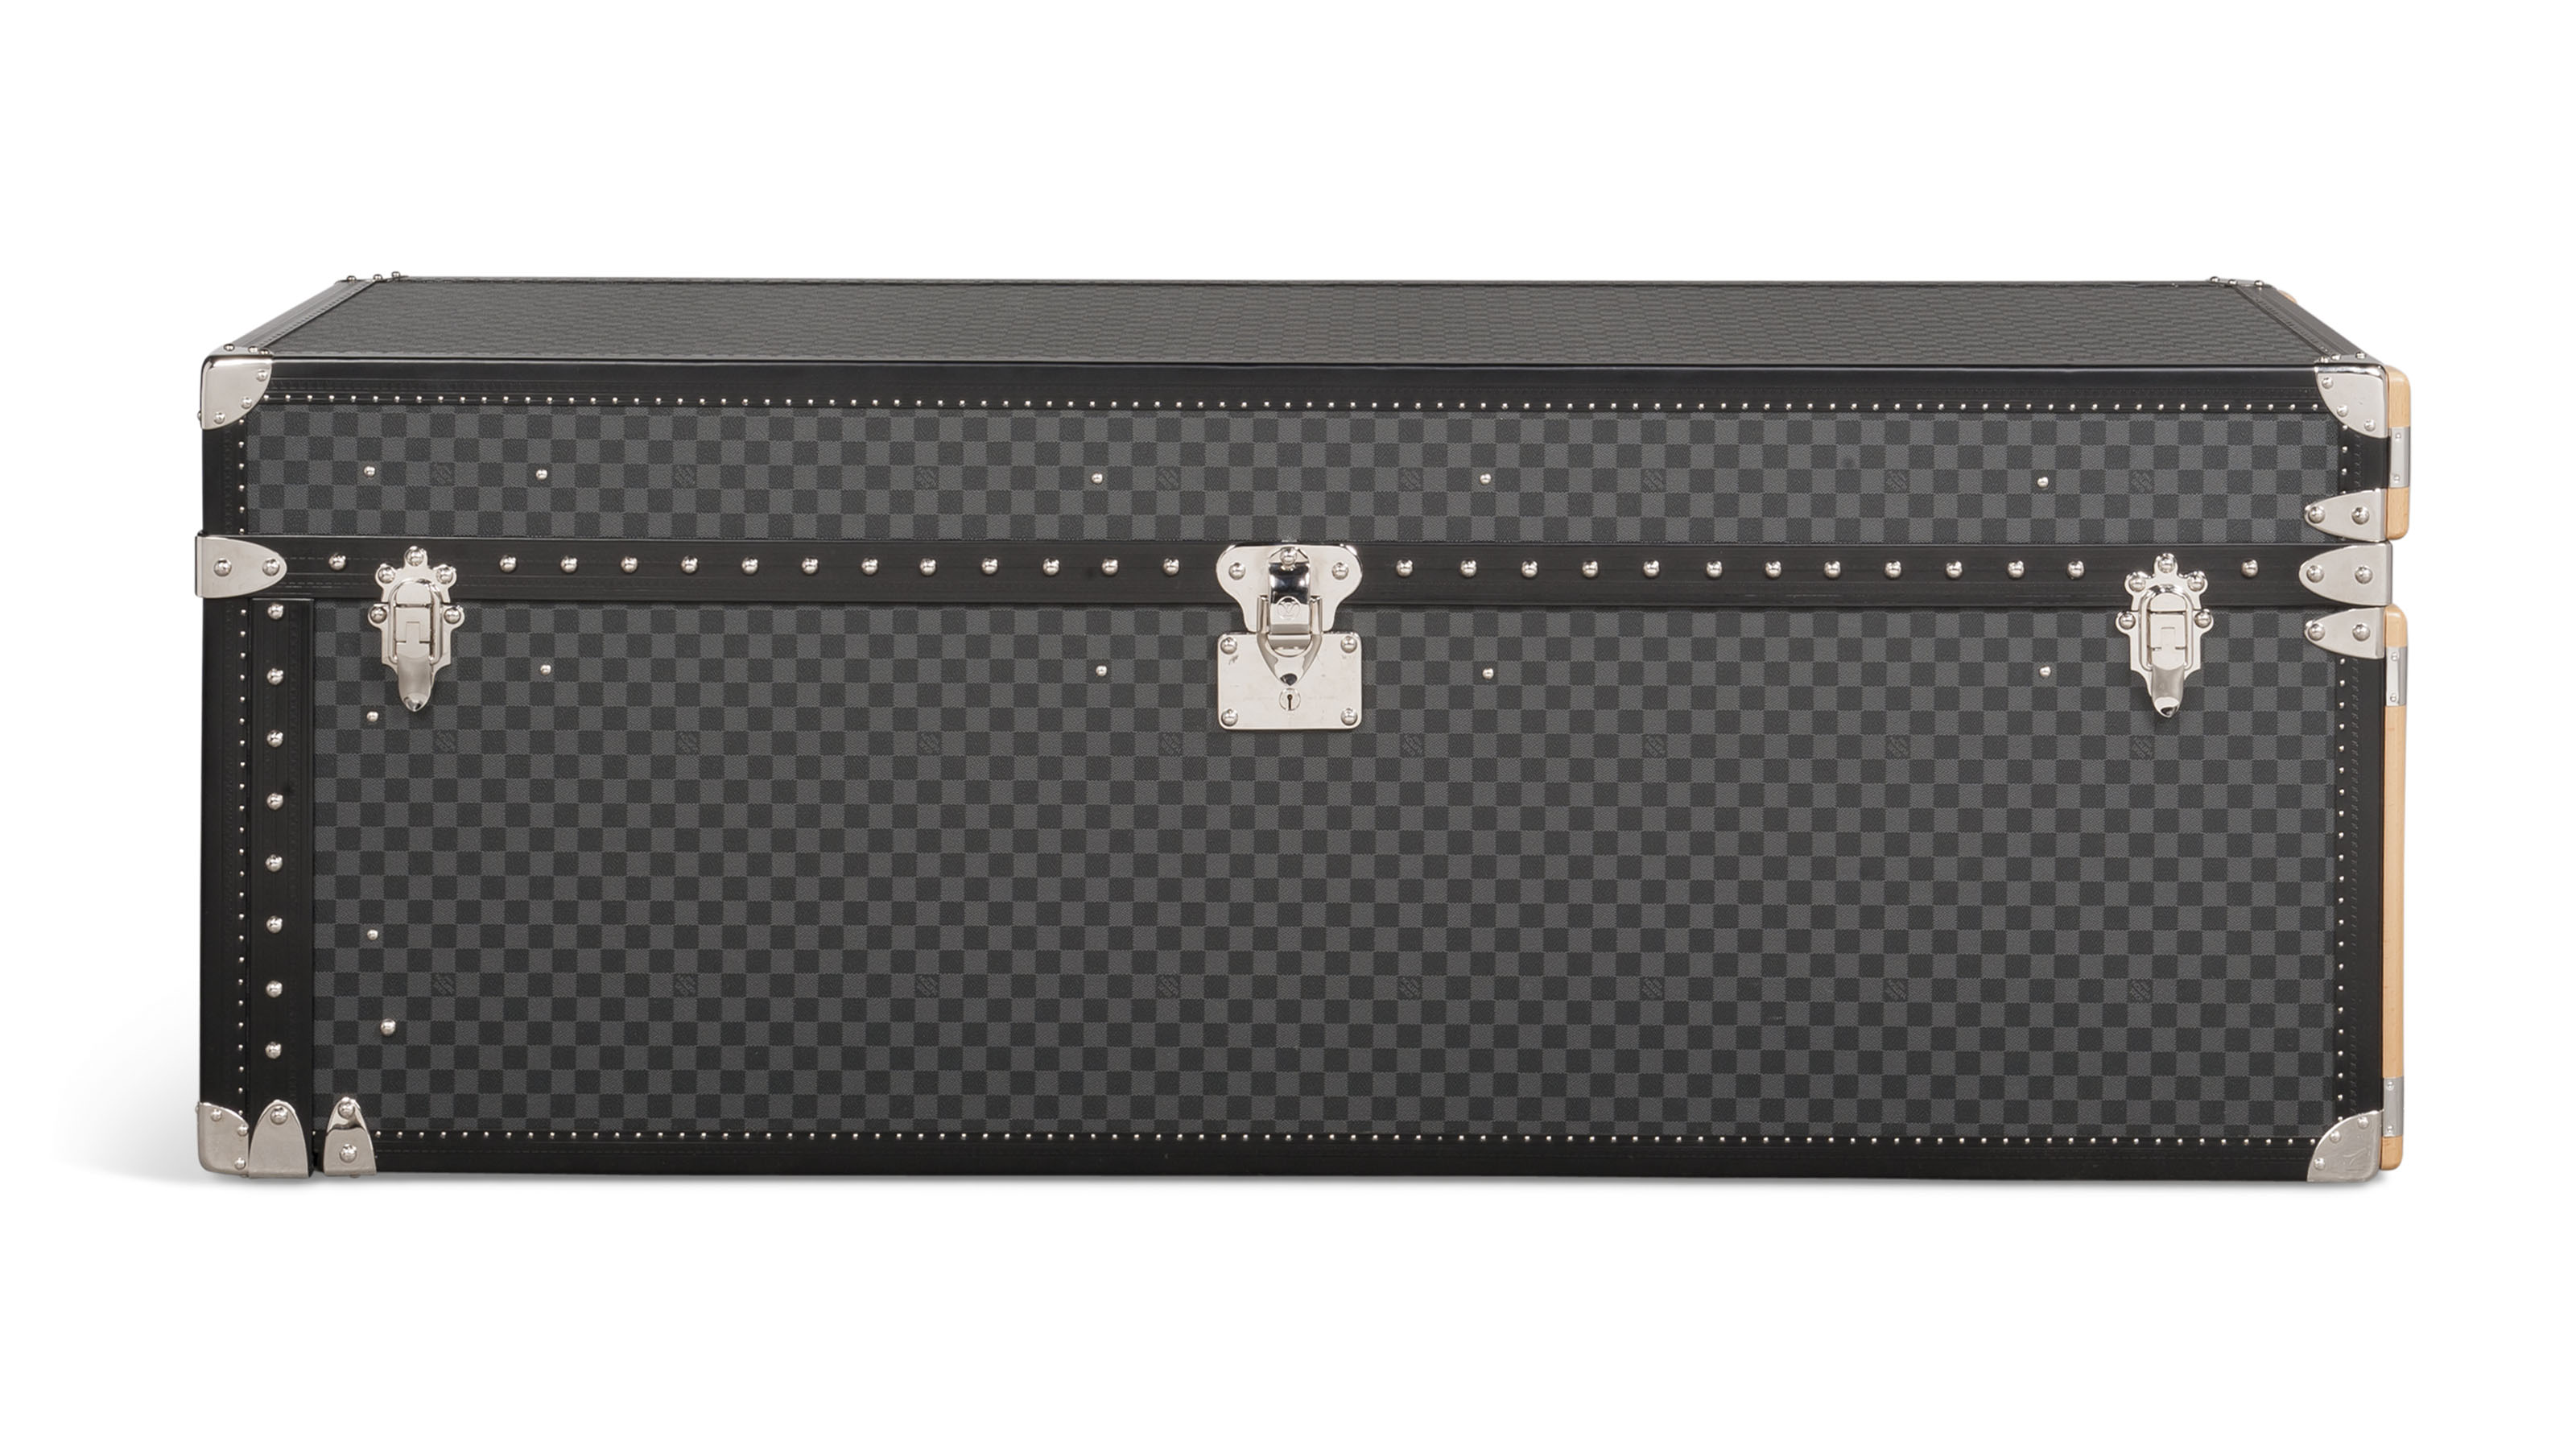 A custom graphite damier canvas watch & jewellery trunk, Louis vuitton, 2016. 150w x 54h x 56d cm. Estimate £30,000-40,000. Offered in Handbags & Accessories on 12 June at